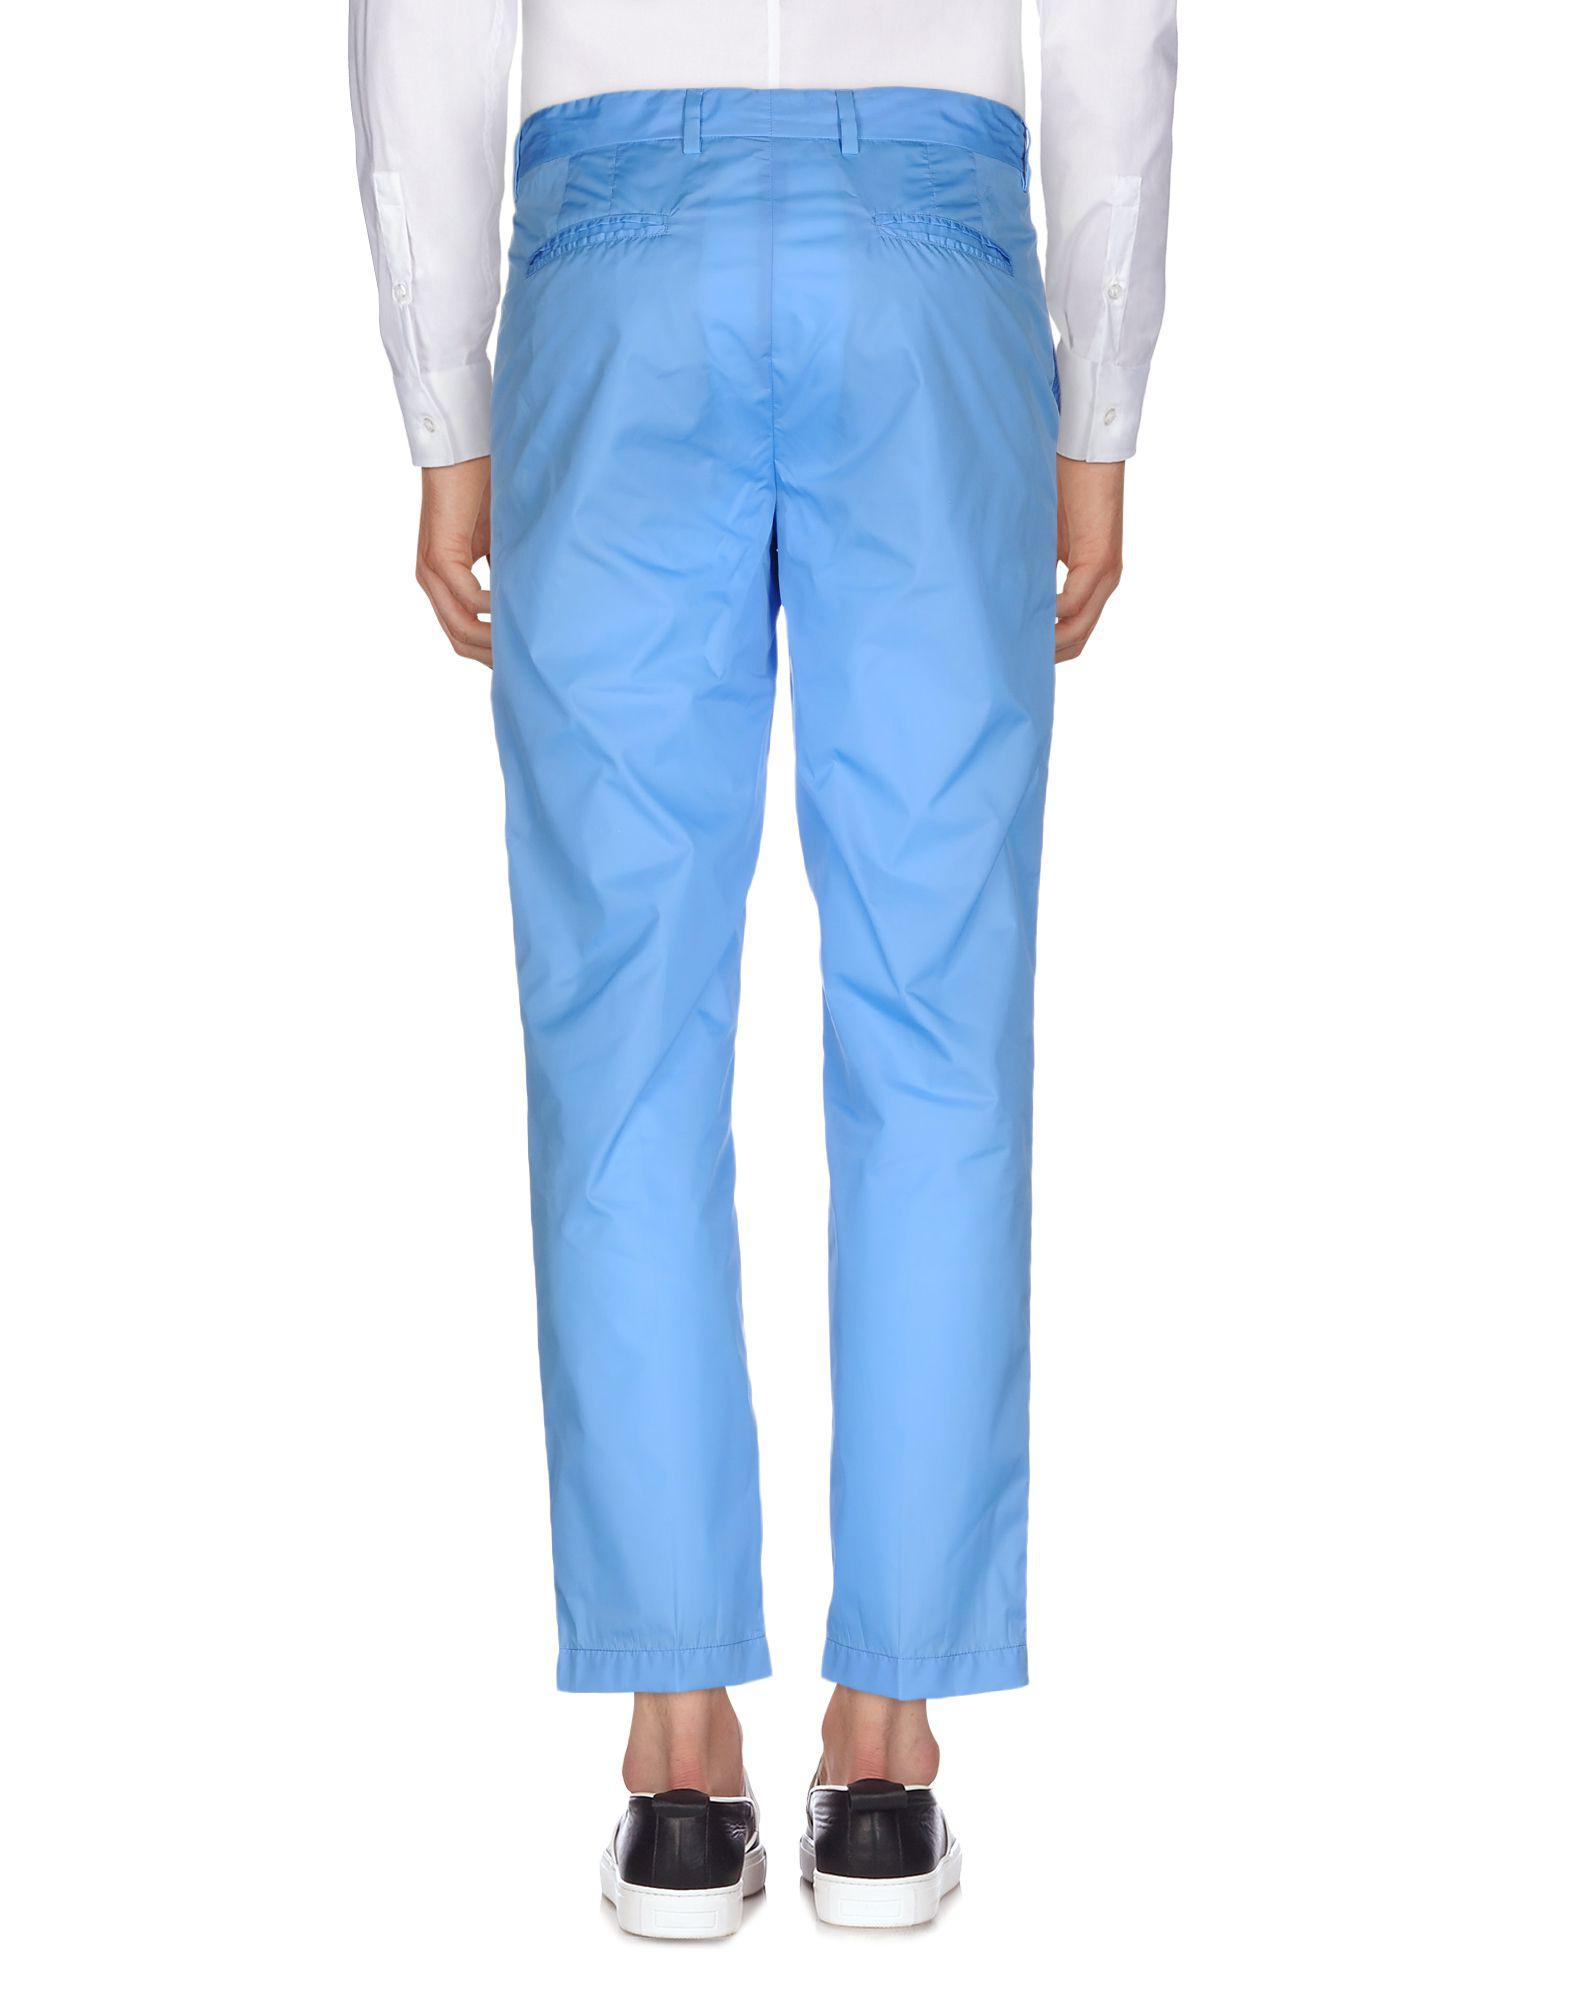 MSGM Synthetic Casual Pants in Azure (Blue) for Men